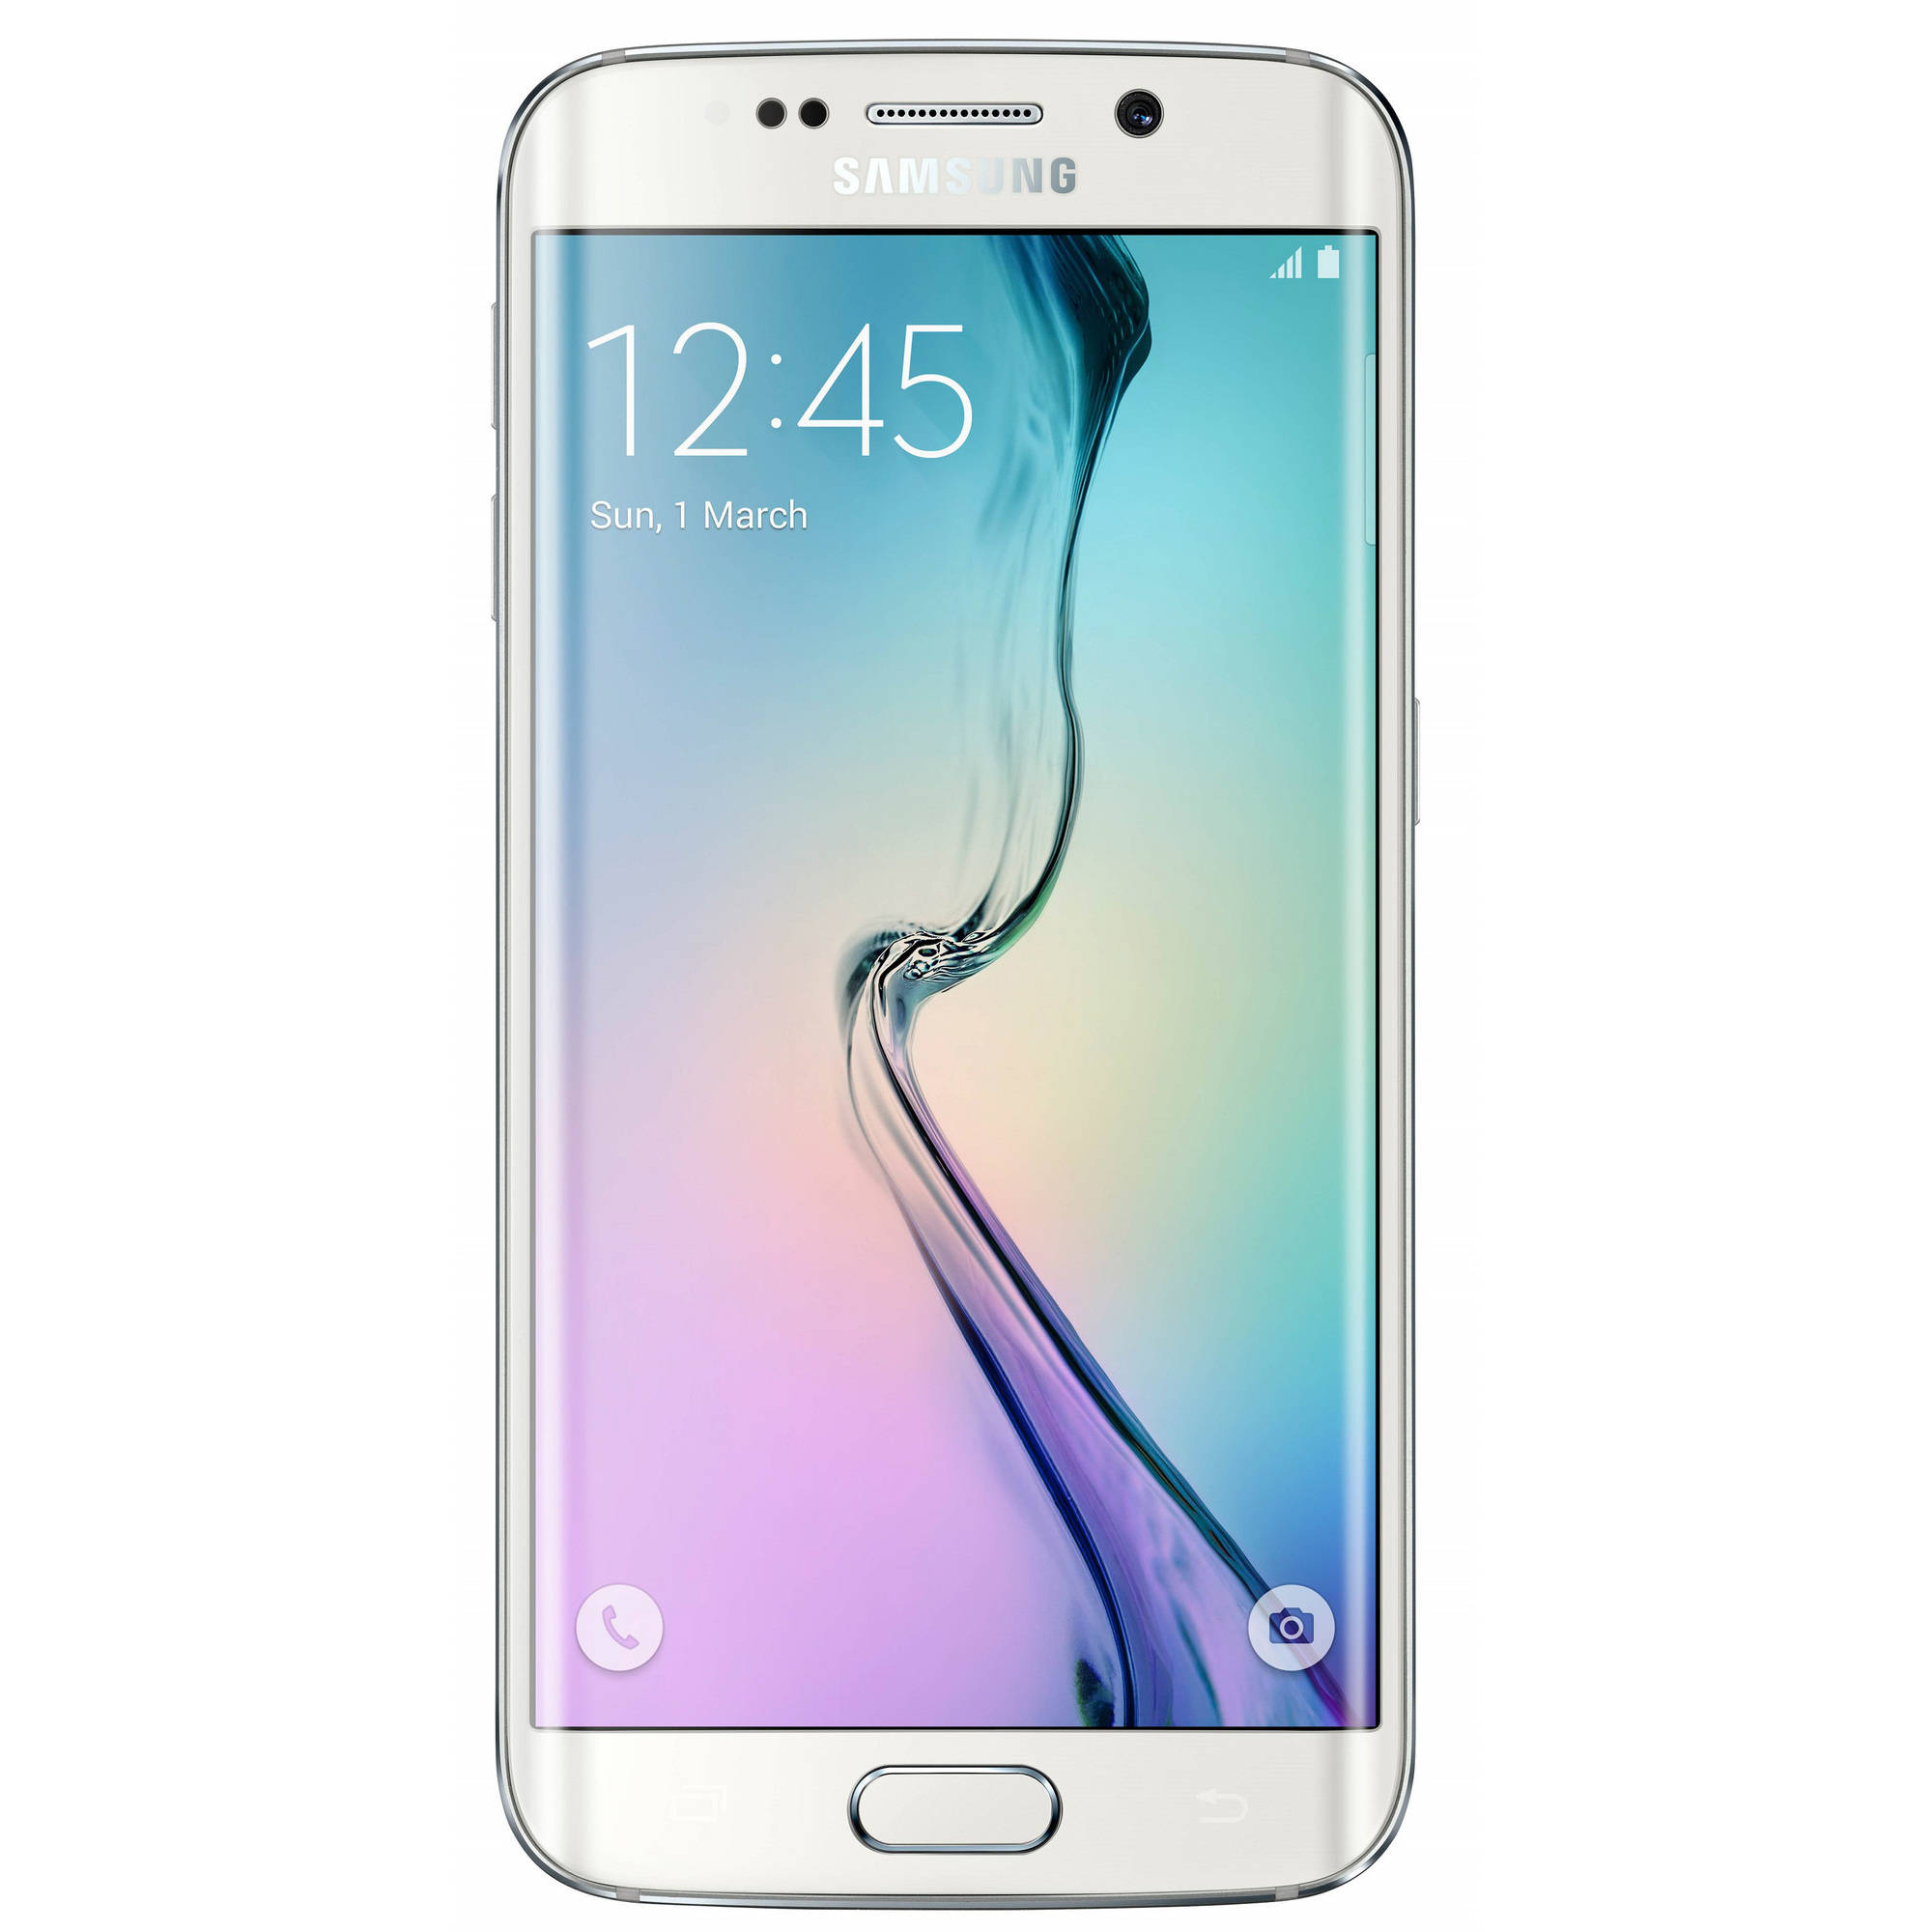 AT&T Samsung Galaxy S6 edge G925A 64GB Smartphone (Unlocked), White